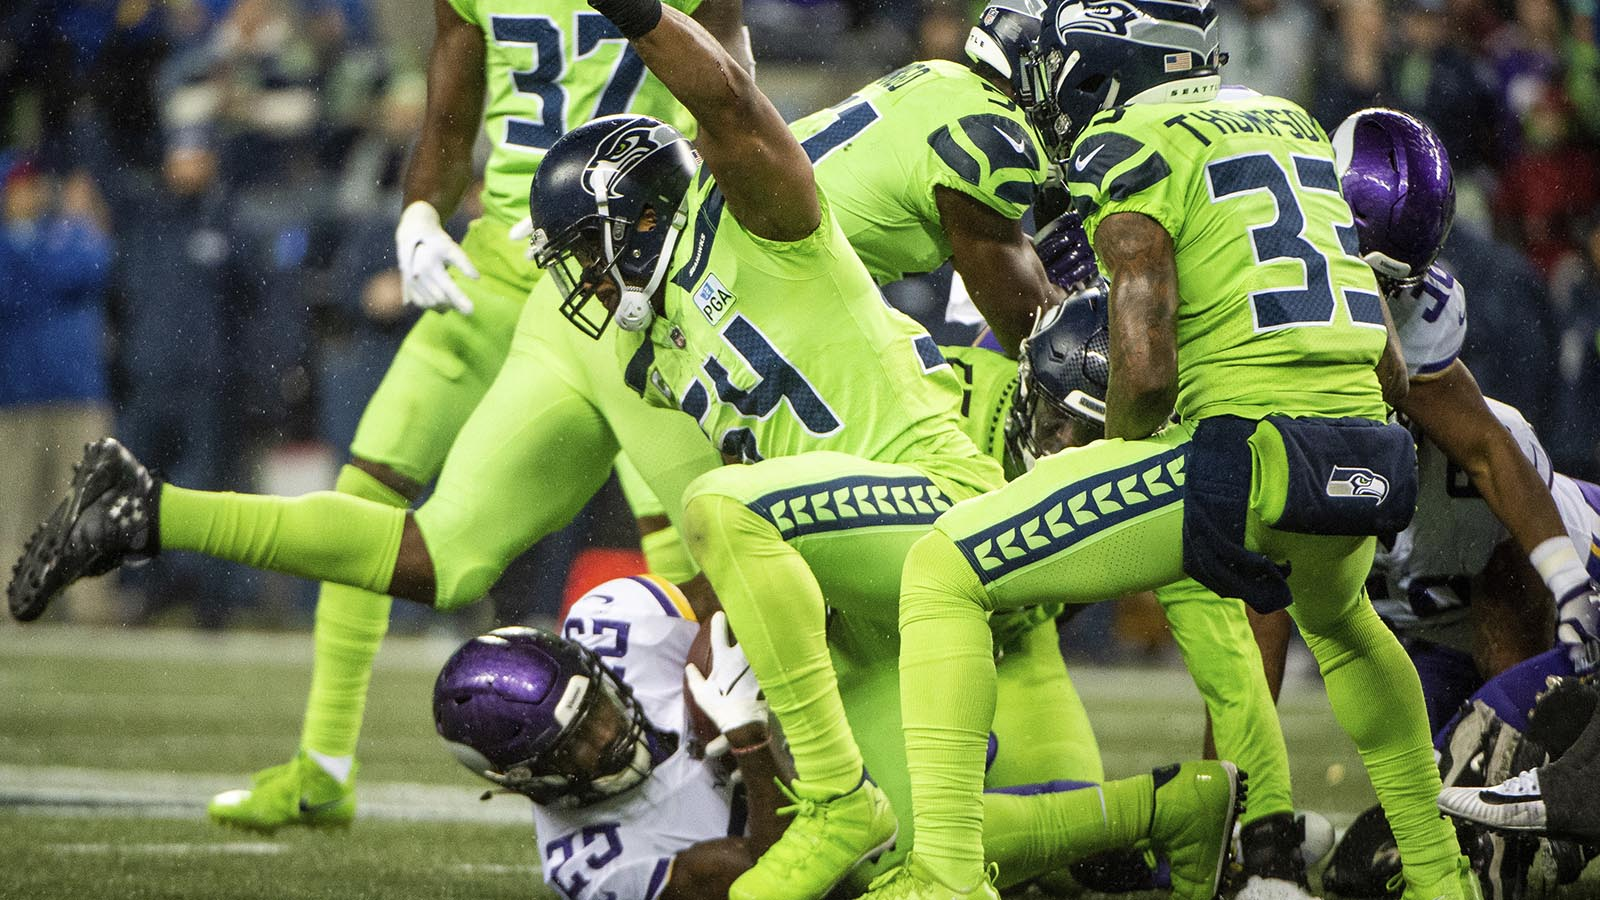 Seattle Seahawks linebacker Bobby Wagner stops Minnesota Vikings running back Latavius Murray (25) on a fourth-and-one run to force a turnover on downs in the third quarter of an NFL football game at CenturyLink Field in Seattle, Wash., on Monday, Dec. 10, 2018. (Joshua Bessex/The News Tribune via AP)